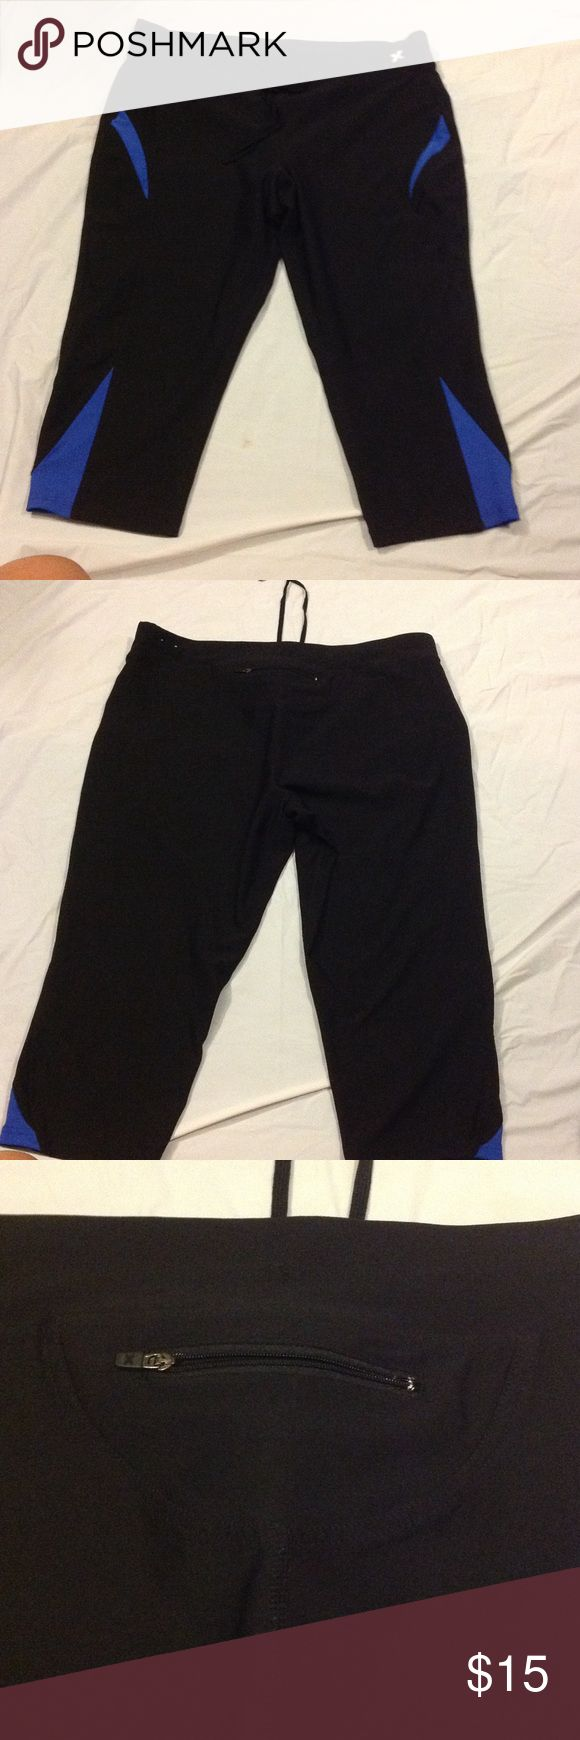 Xersion Fitted Capri Athletic Pants Used, but good condition athletic pants. 88% polyester, 12% spandex pants with drawstring and keep pocket in the back. See pictures, and ask any questions you might have Xersion Pants